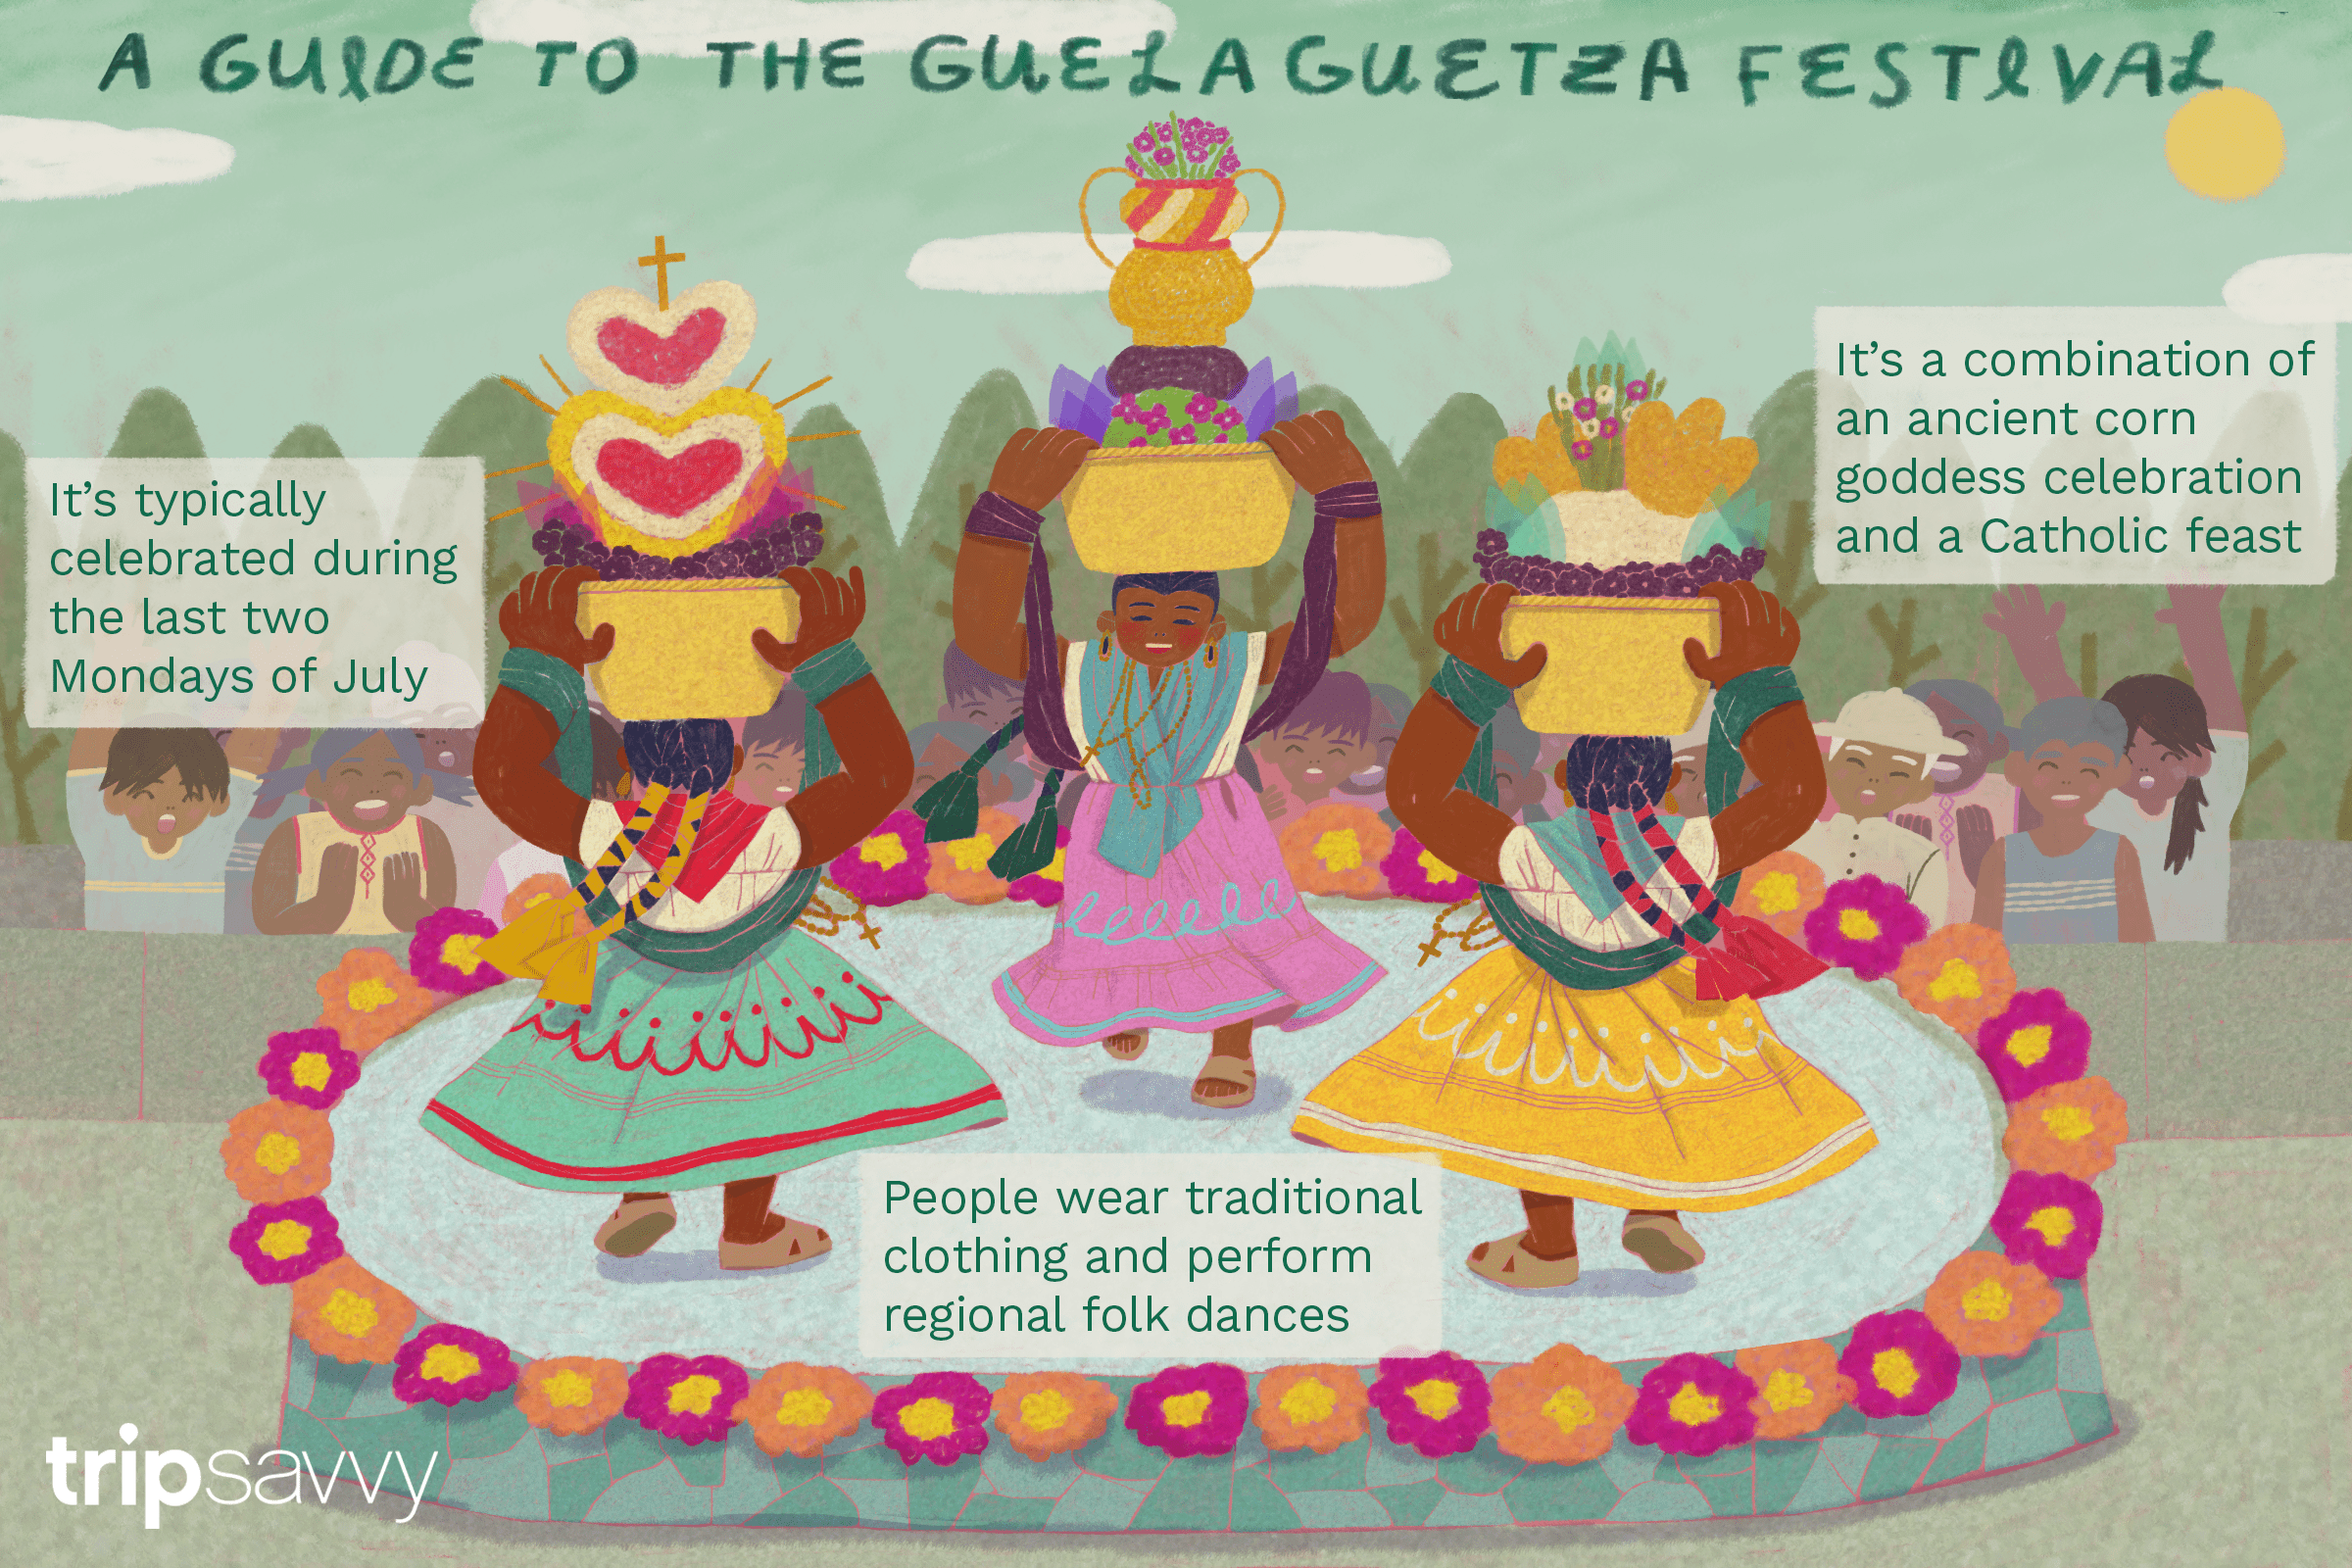 an illustration of the Guelaguetza festival with facts about it from the article